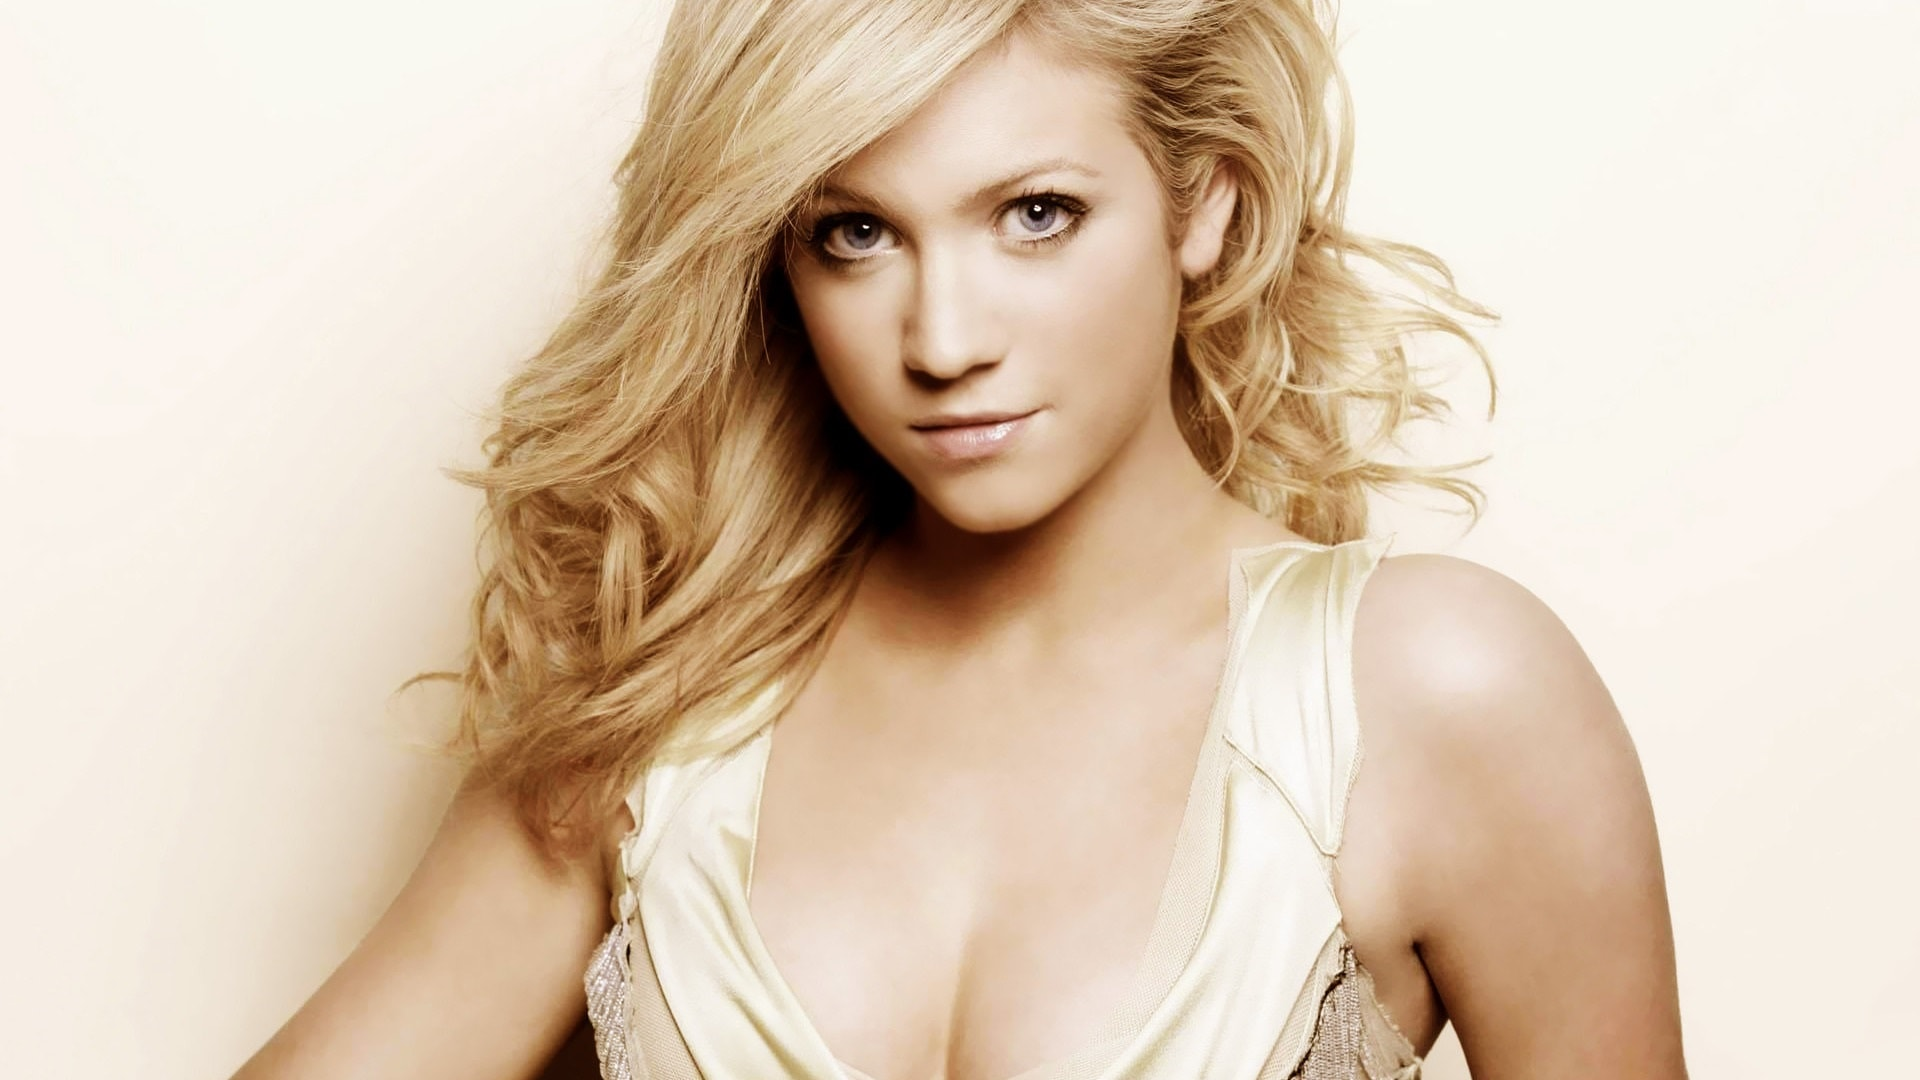 Brittany Snow Widescreen for desktop